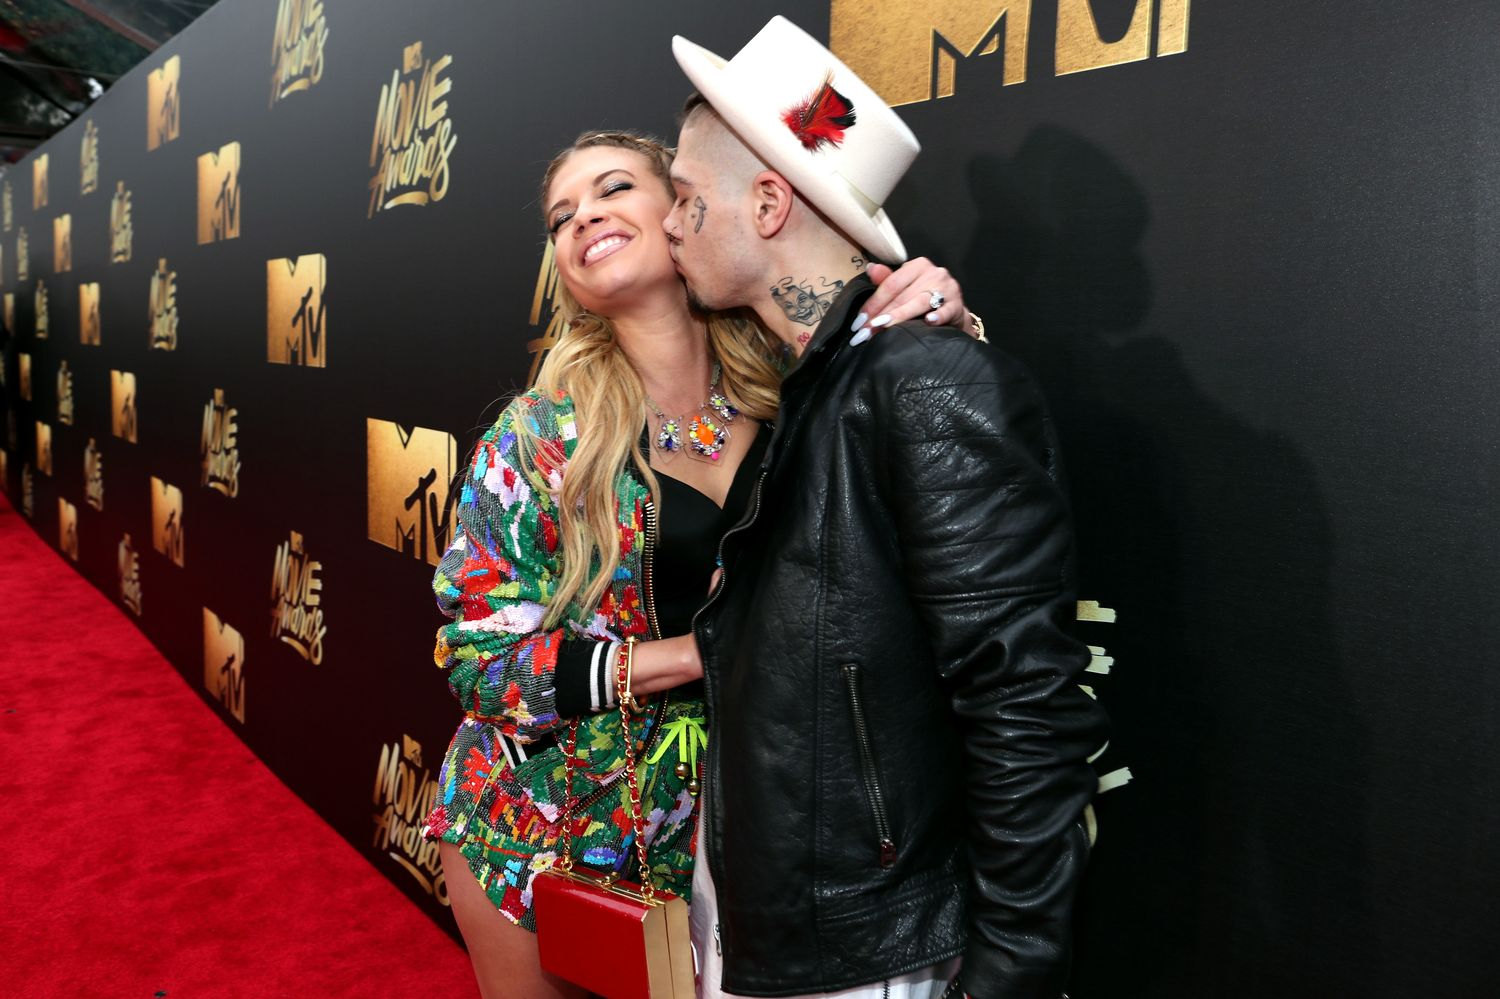 BURBANK, CALIFORNIA - APRIL 09: Rapper Chanel West Coast (L) and singer Liam Horne attend the 2016 MTV Movie Awards at Warner Bros. Studios on April 9, 2016 in Burbank, California. MTV Movie Awards airs April 10, 2016 at 8pm ET/PT. (Photo by Christopher Polk/Getty Images for MTV)